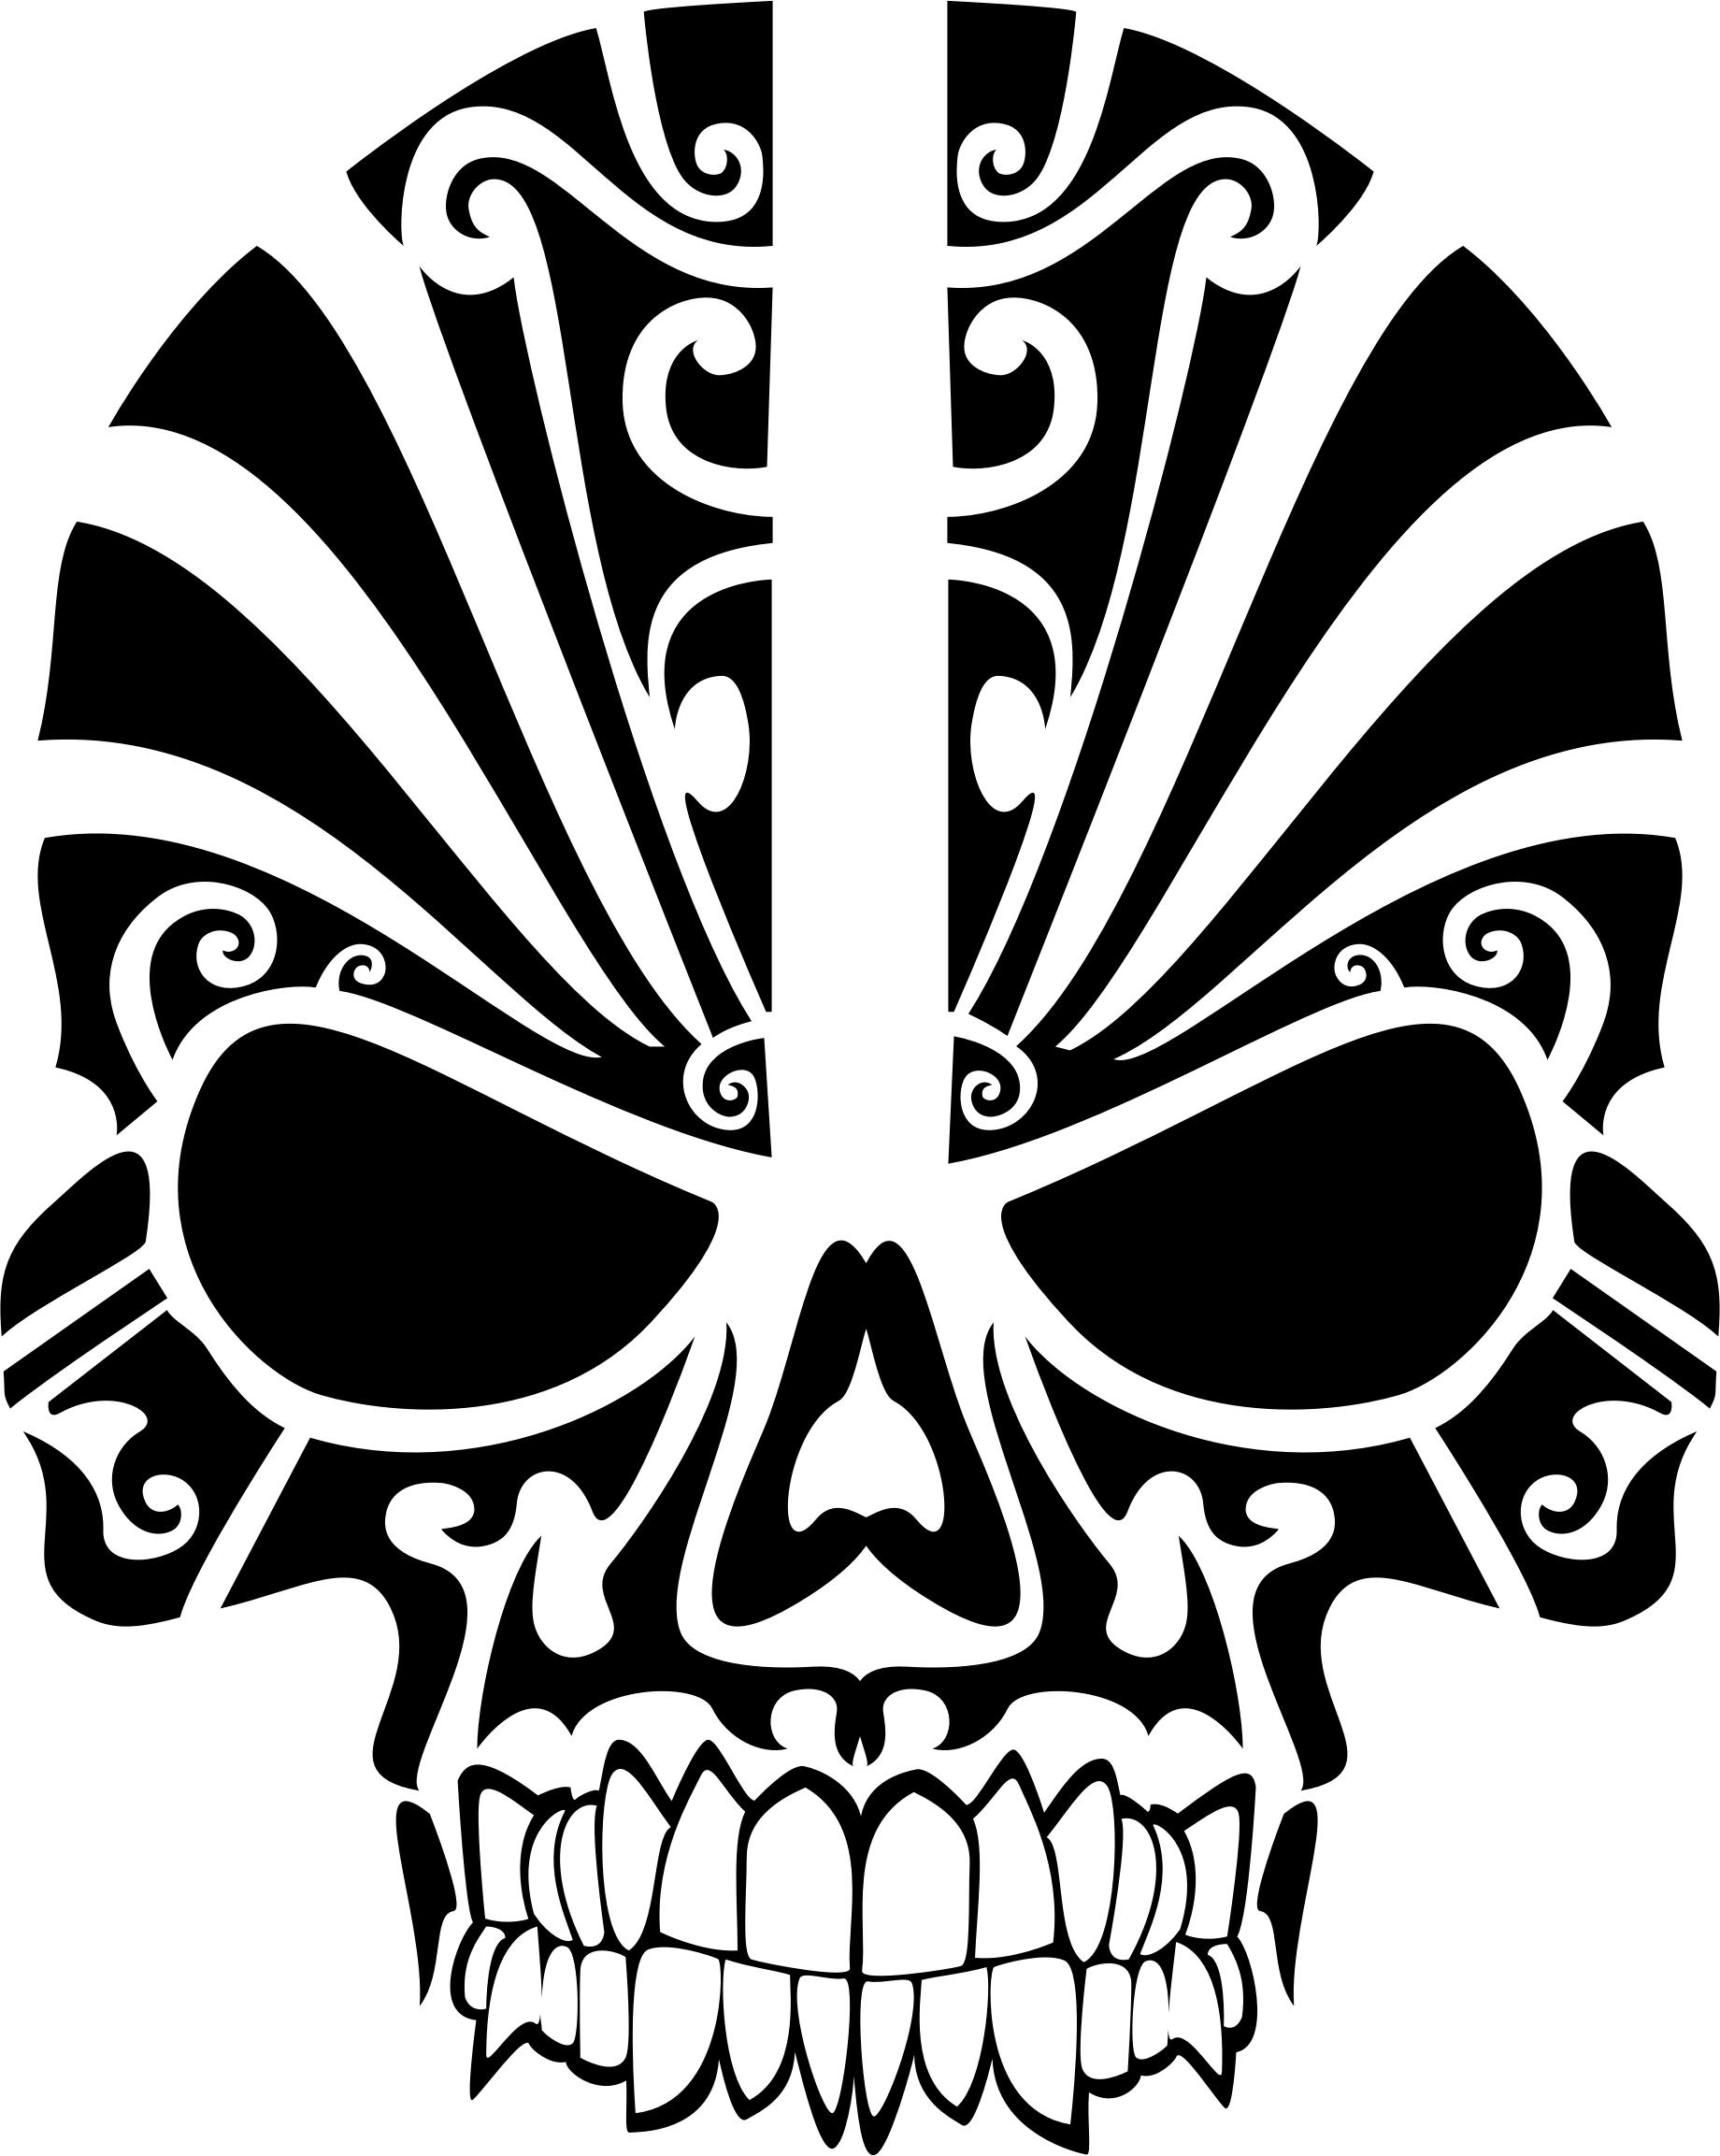 1840x2306 Tribal Skull Silhouette 2 Icons Png